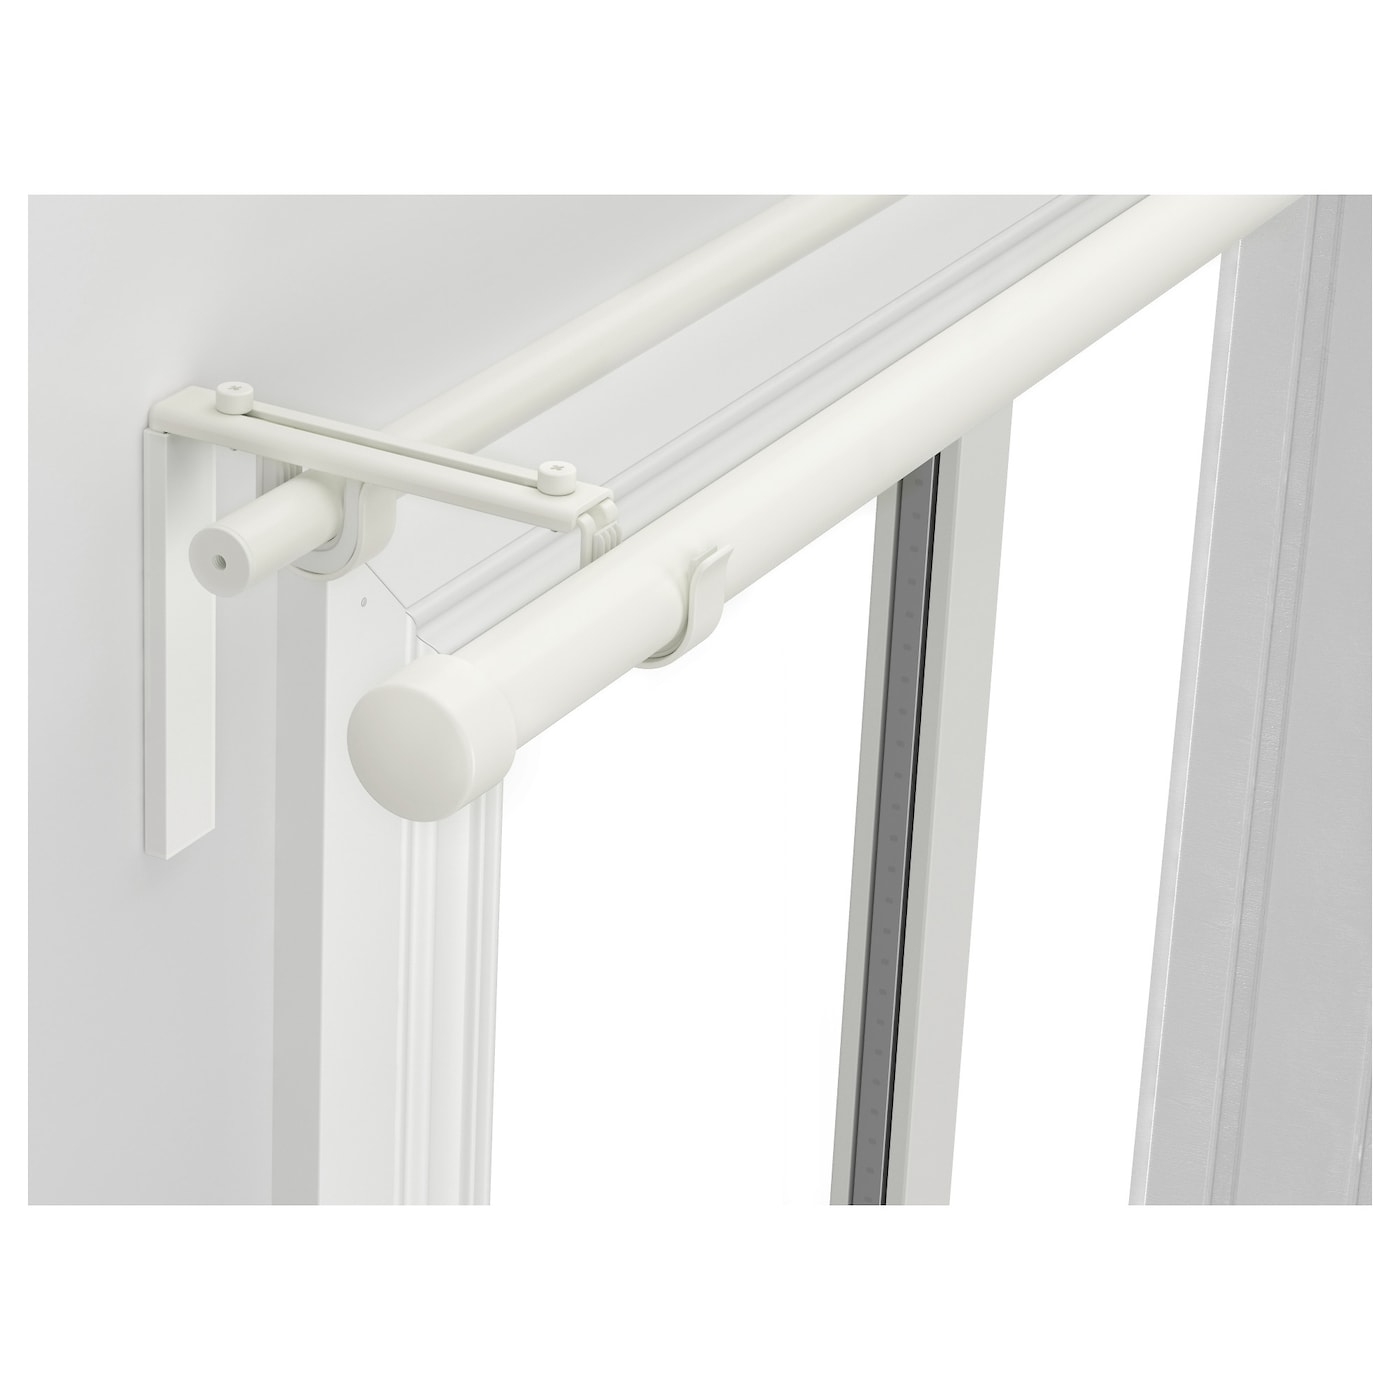 ikea hugadrcka double curtain rod combination the length is adjustable